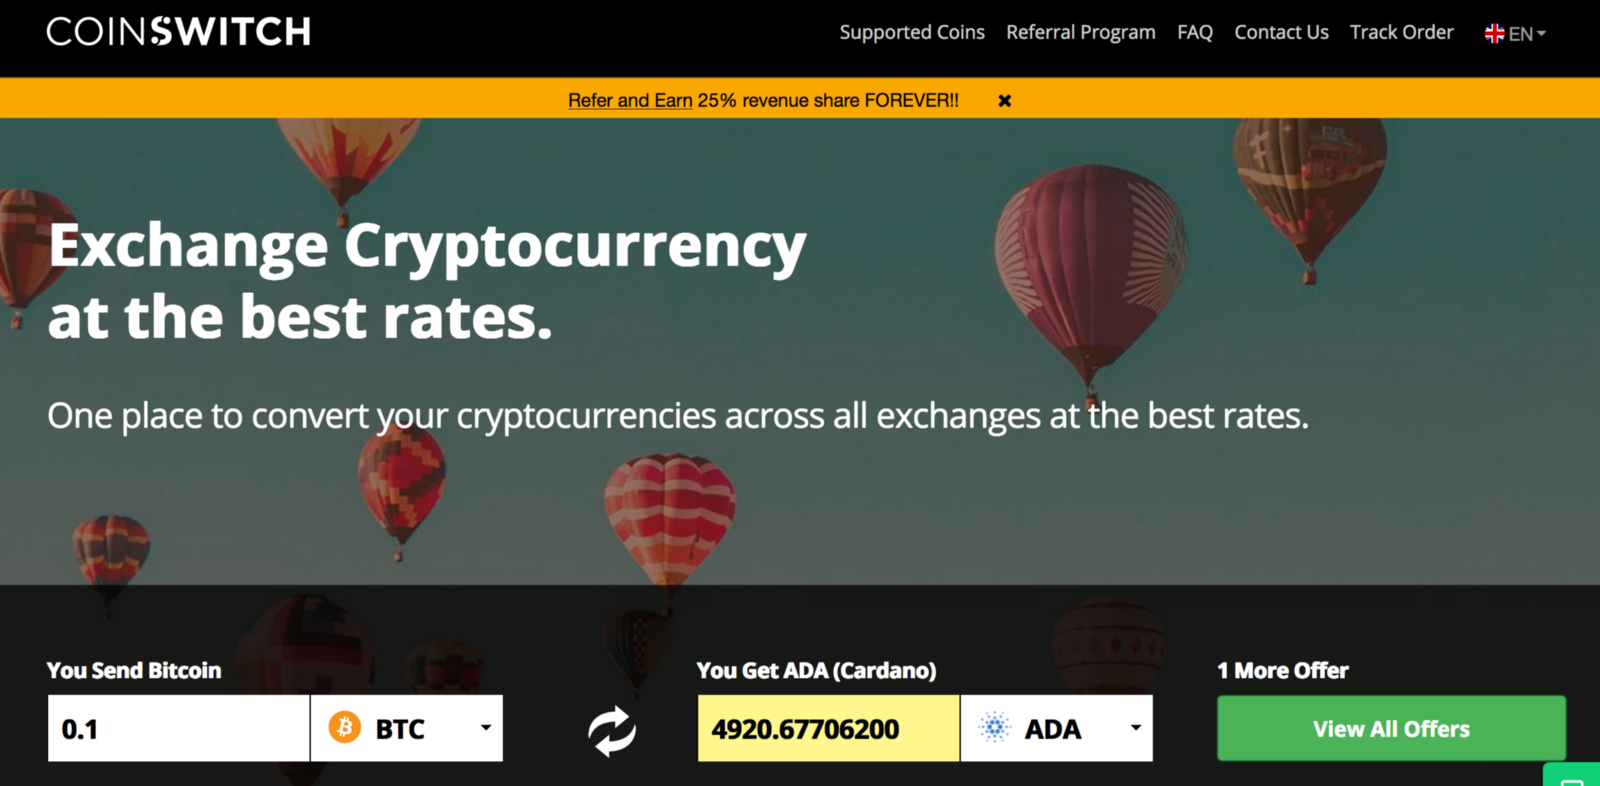 How to buy cardano ada on coinswitch coinswitch here you will see the list of all exchanges with cardano ada quantity they are offering choose the best exchange to convert bitcoin btc to cardano ccuart Gallery